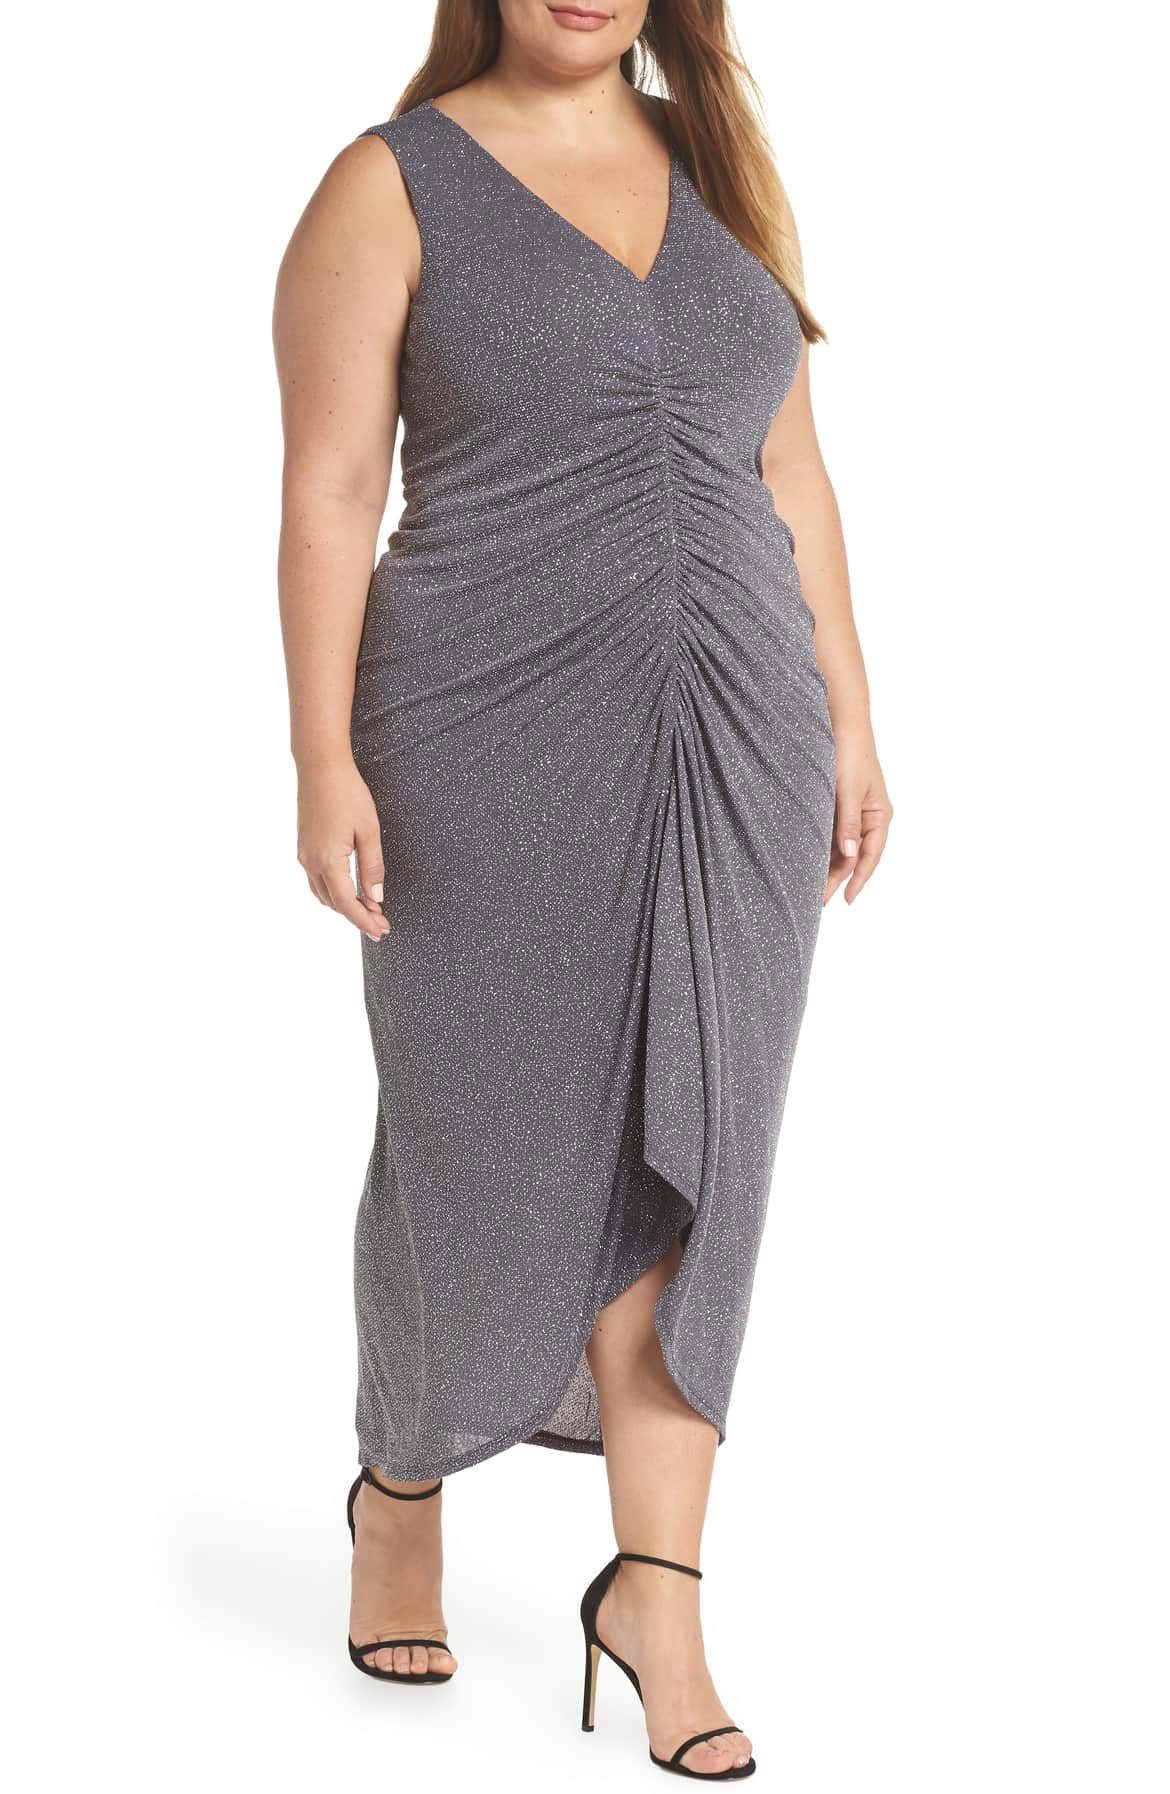 <p>Sprinkled in shimmering metallic sparkle, this figure-flattering evening dress will turn every head in the room. $198. (Image: Nordstrom){&nbsp;}</p><p></p>